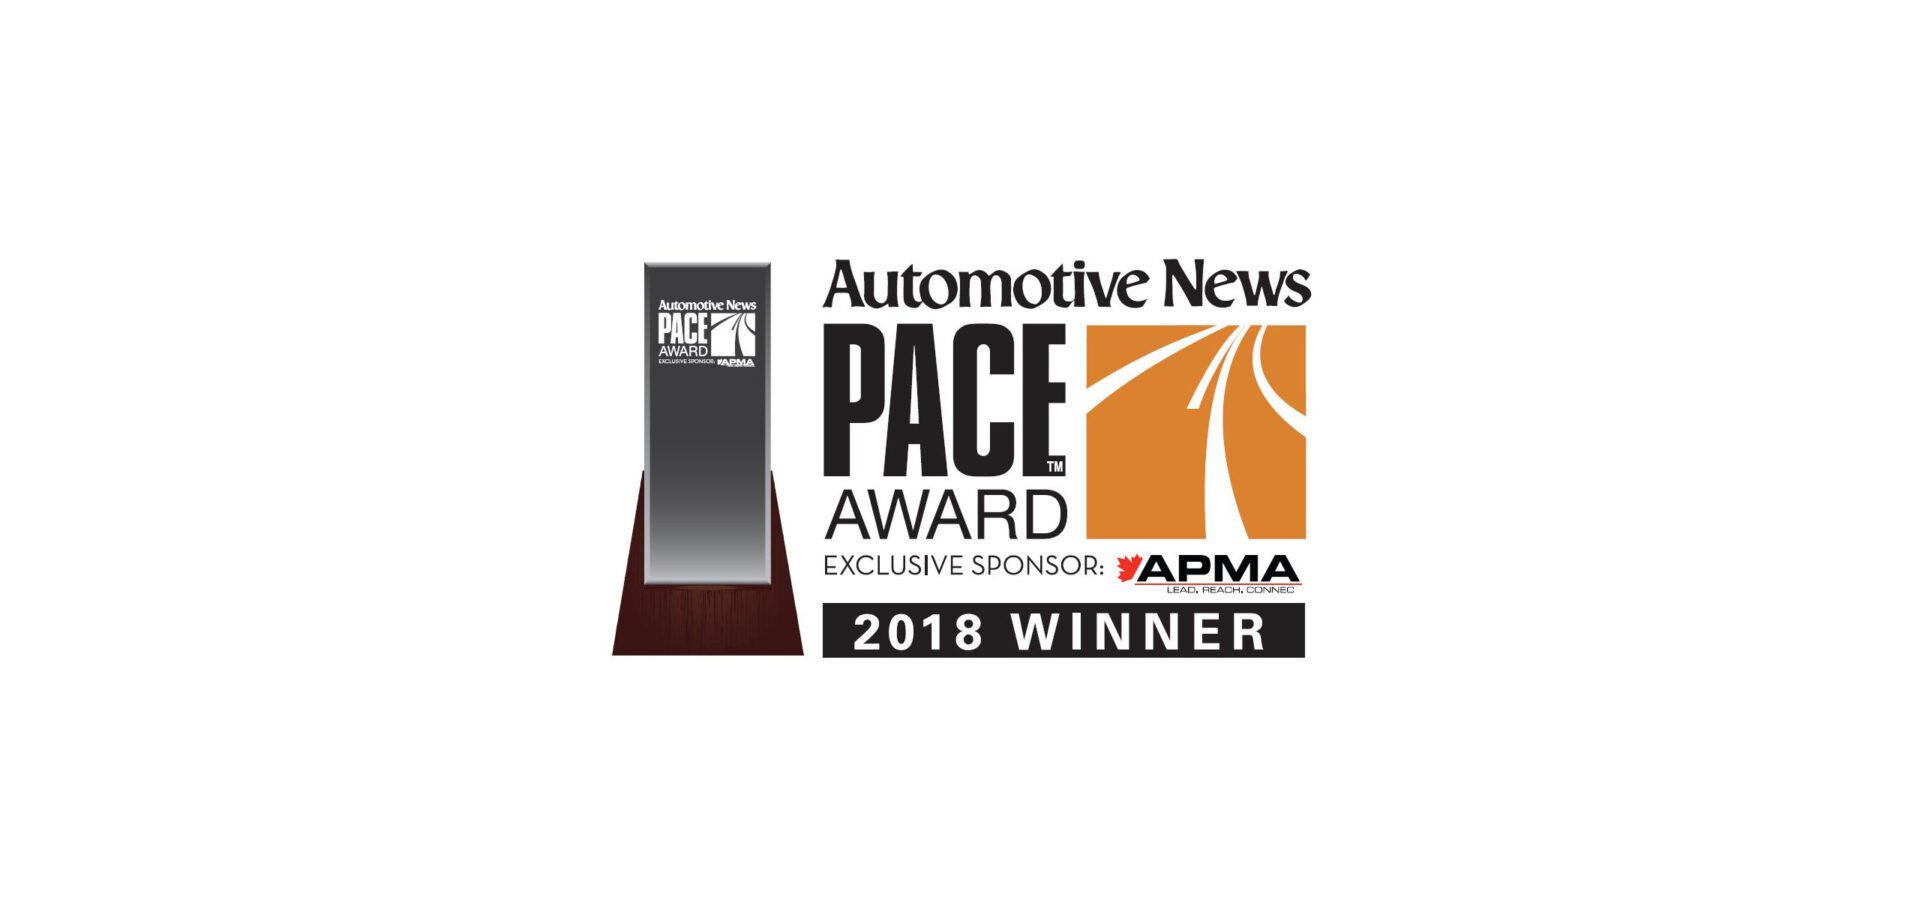 SKF gewinnt Automotive Award 2018